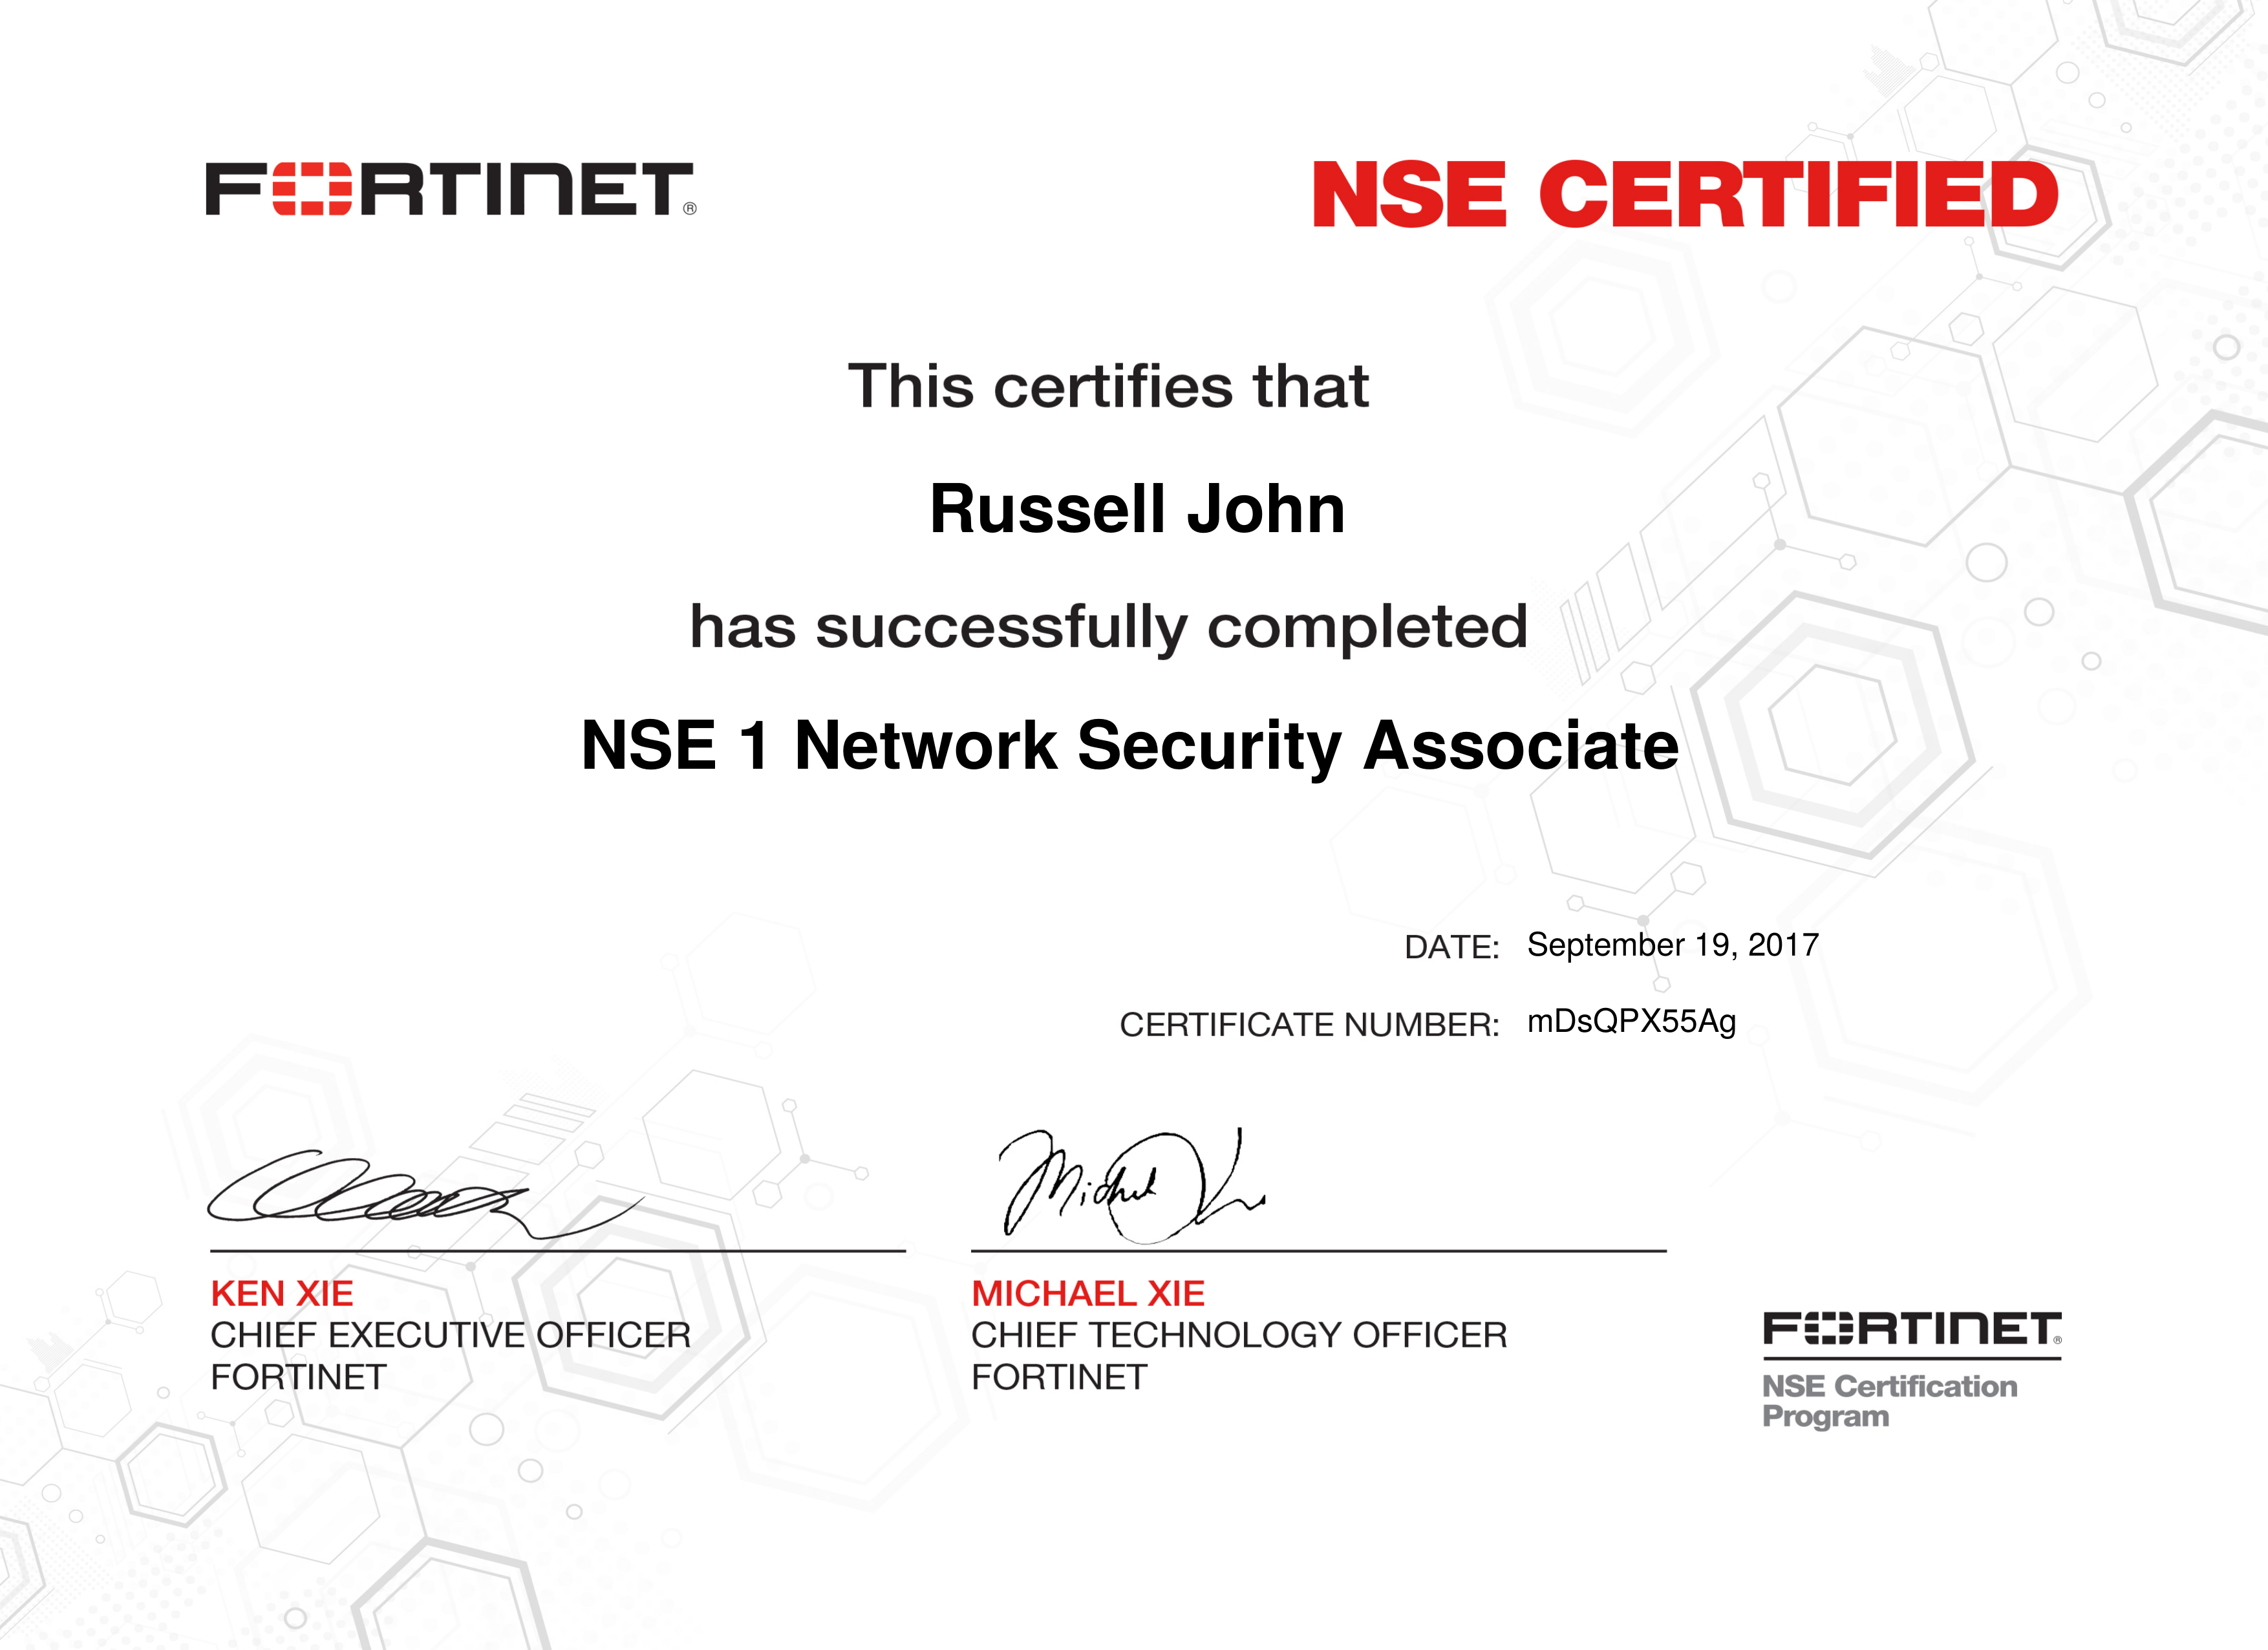 Fortinet NSE 1 Network Security Associate Certificate